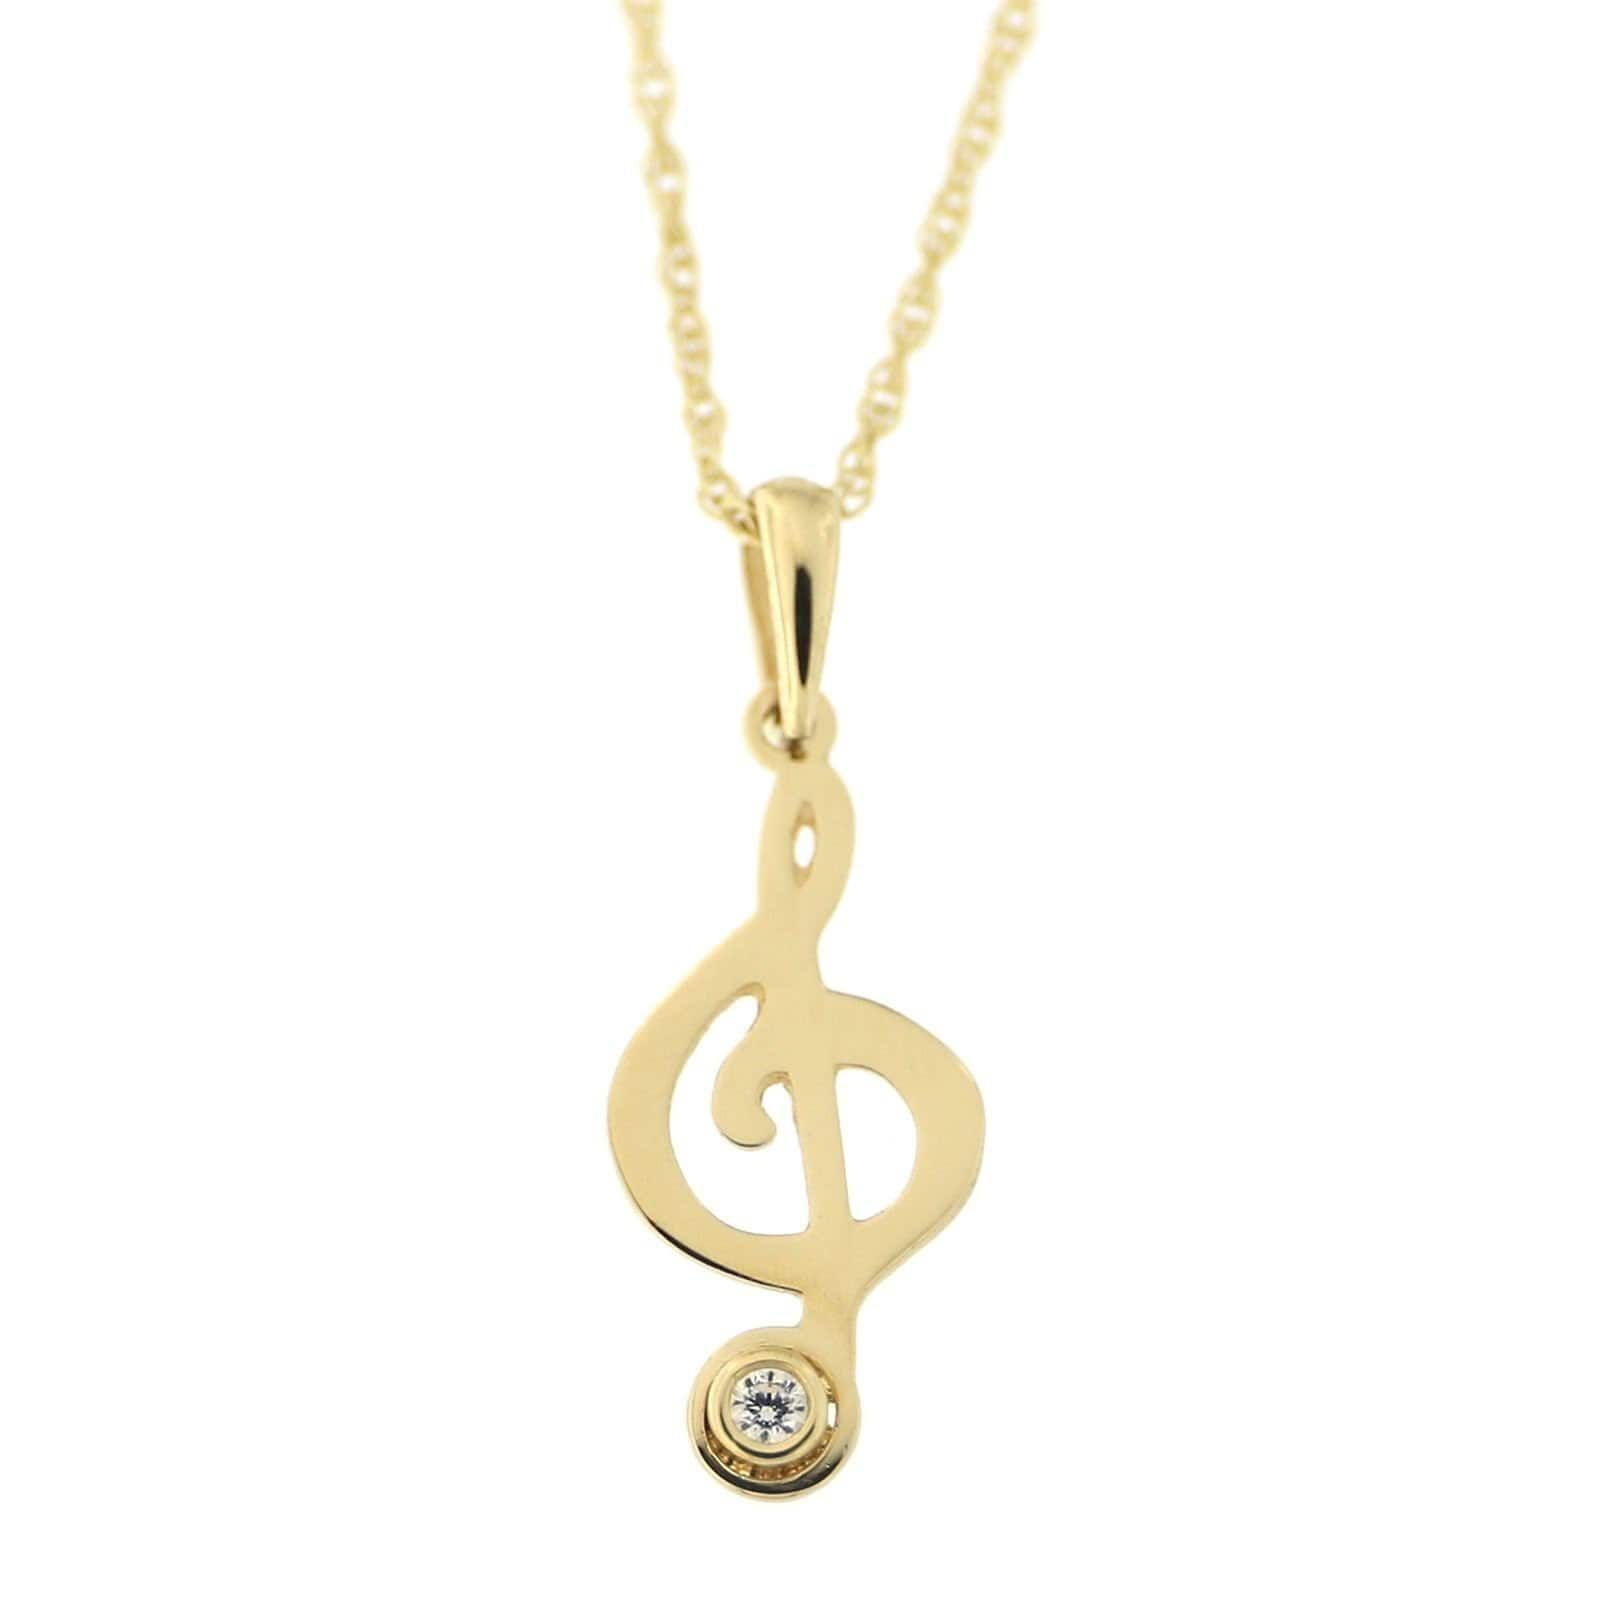 Cubic Zirconia Heart Pendant 14K Yellow Gold Over Sterling Silver $167.95